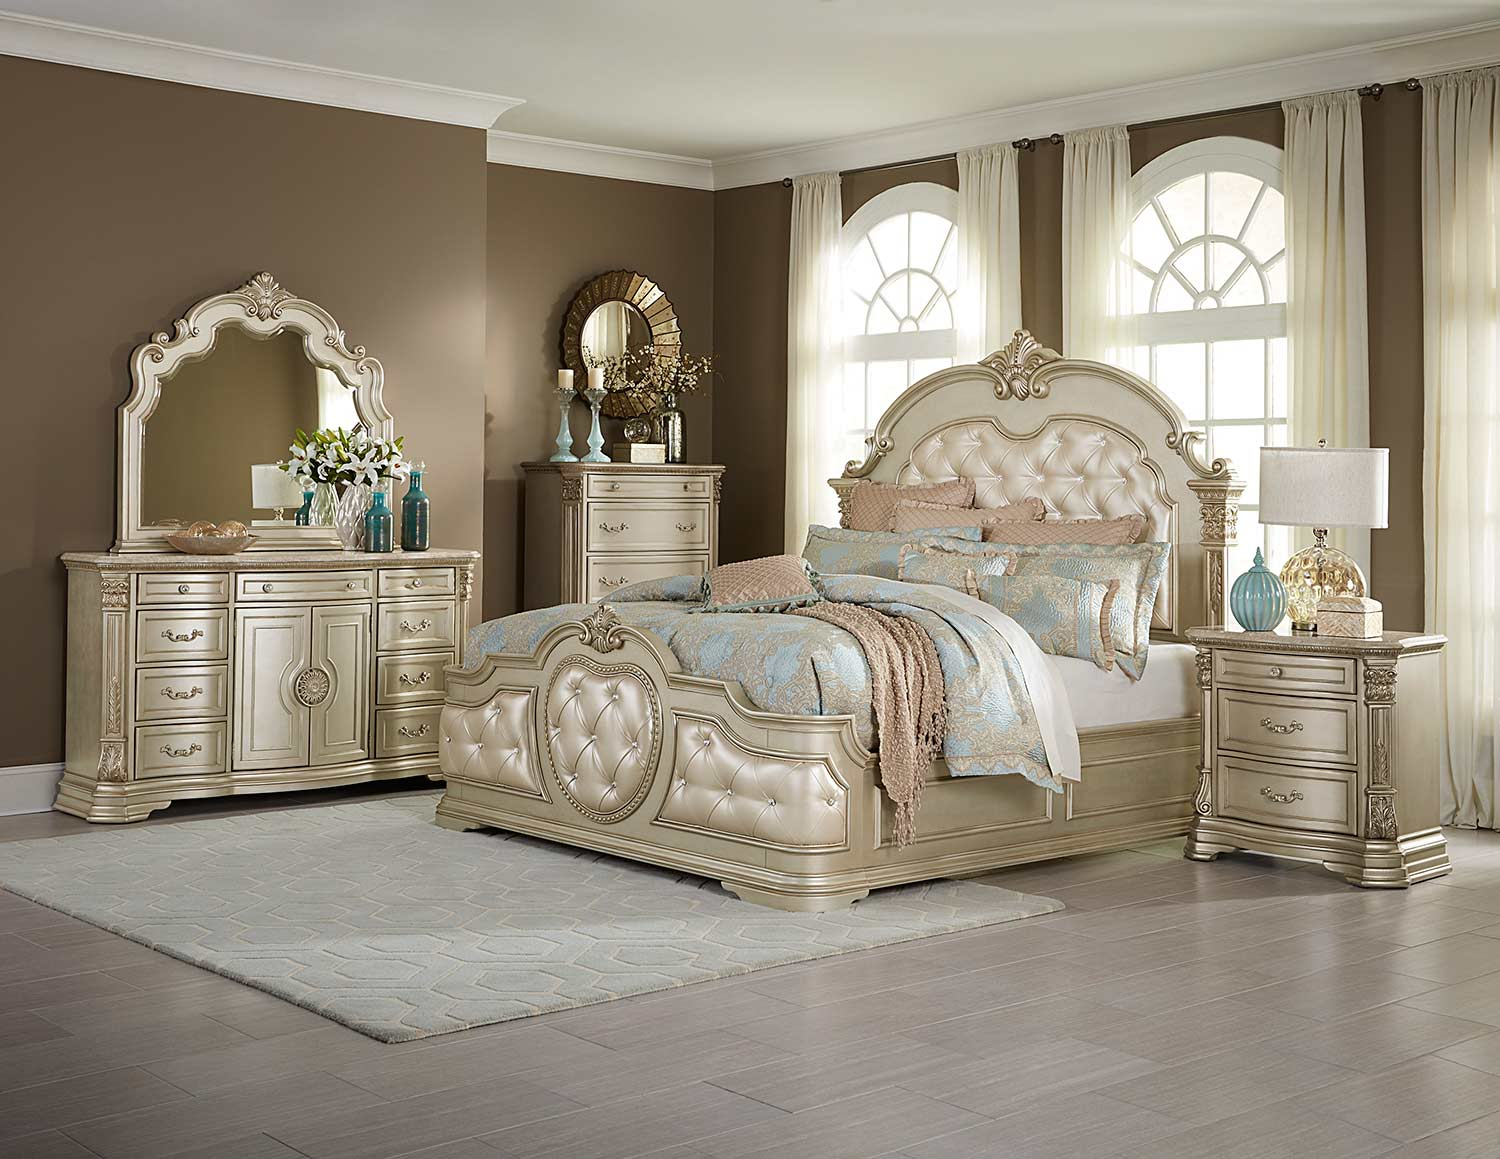 Homelegance antoinetta bedroom set champagne 1919nc bed set at homelement com